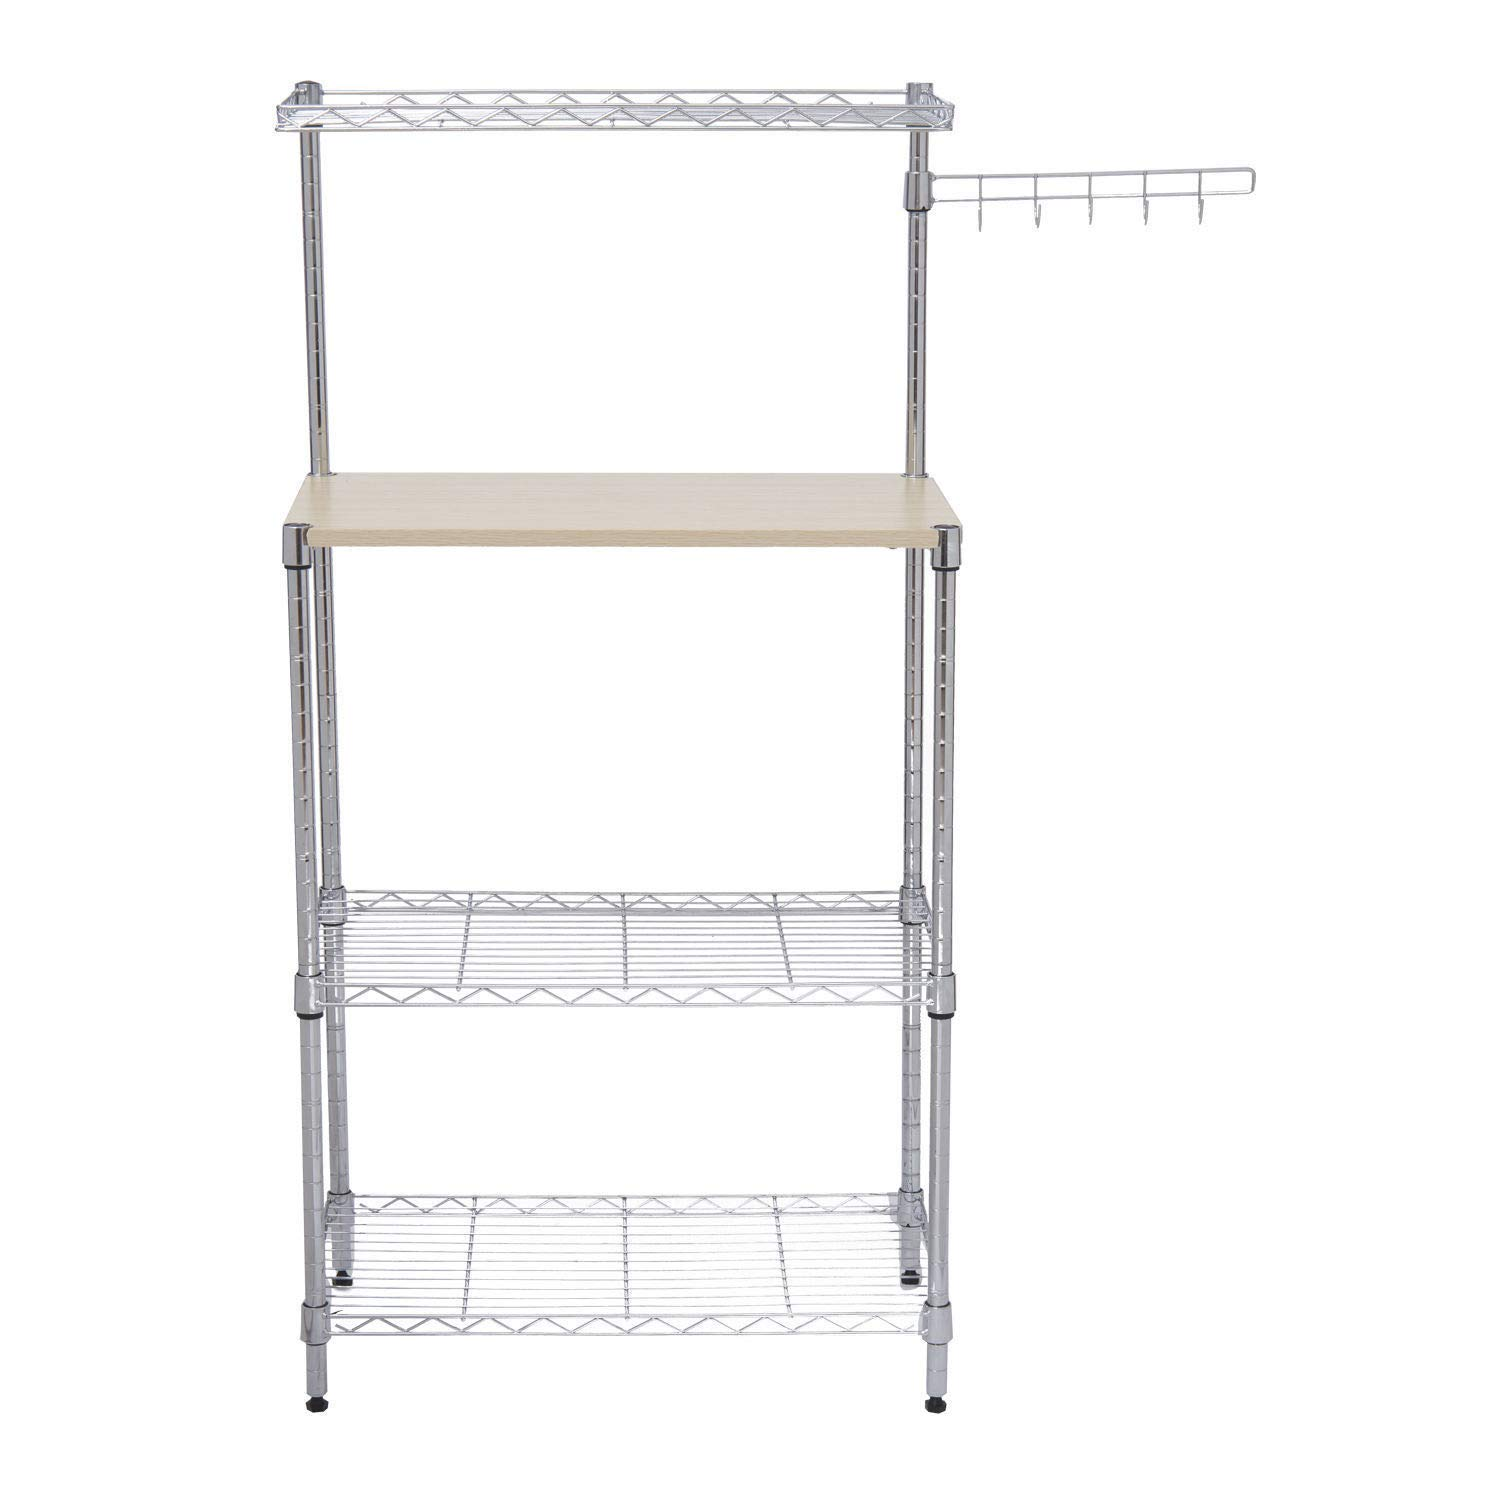 Cirocco 4 Tiers Kitchen Bakers Rack with Cutting Board - Freestanding Tower Rack Storage Shelf - Organizer Shelving Unit - Microwave Oven Rack Stand | Anti Rust Mesh Border Durable for Home Restaurant